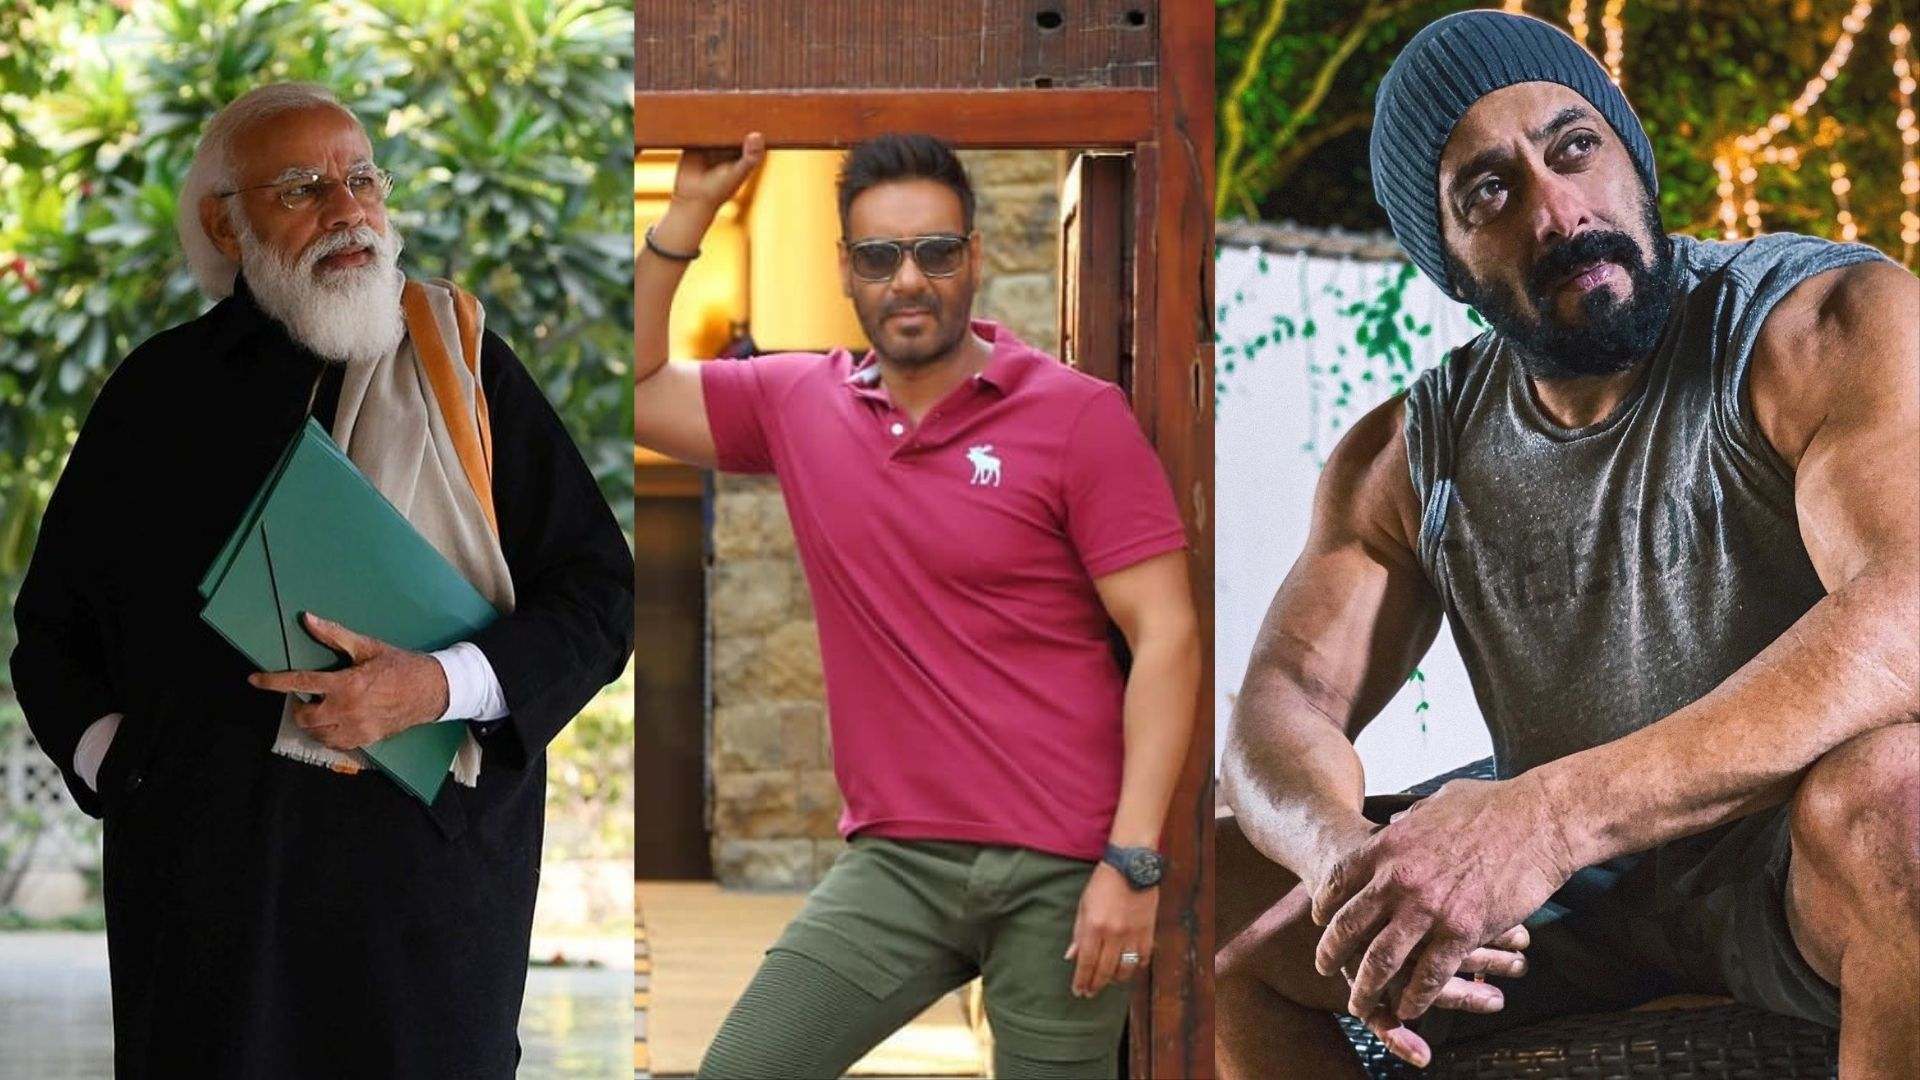 Prime Minister Narendra Modi's 71st Birthday: Bollywood Superstars Salman Khan And Ajay Devgn Pour In Warm Wishes